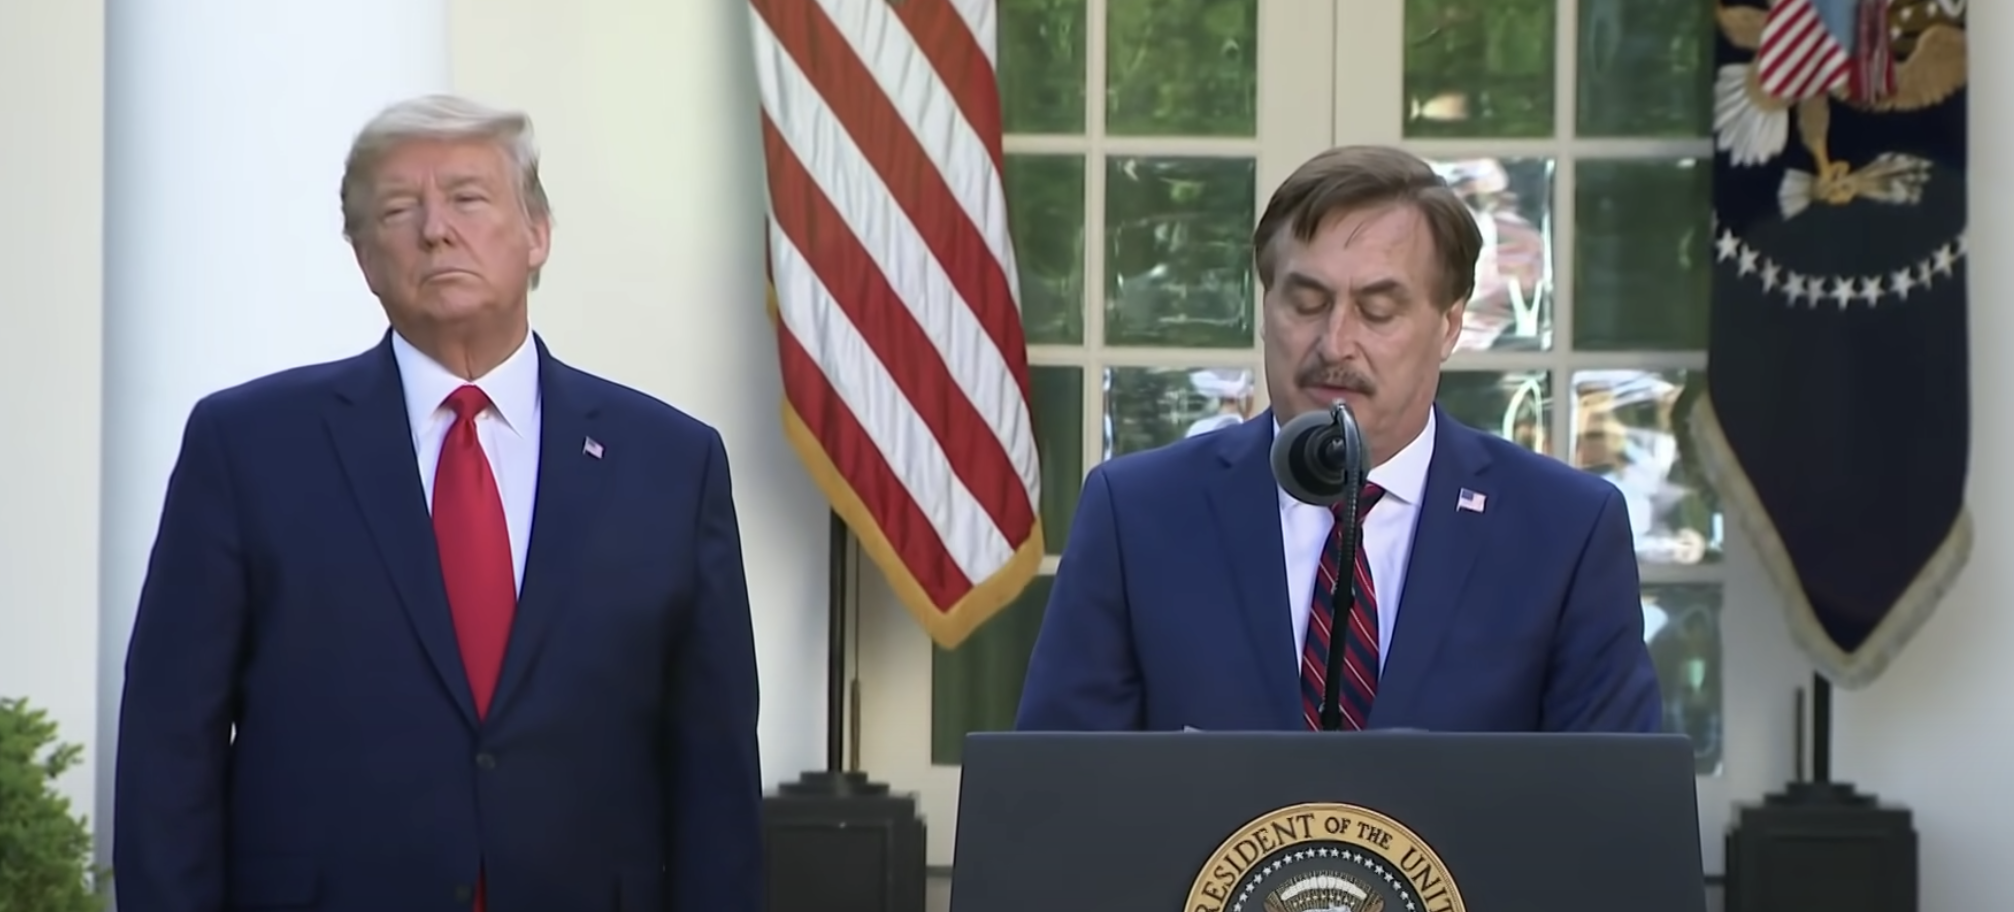 Mike Lindell at the Rose Garden